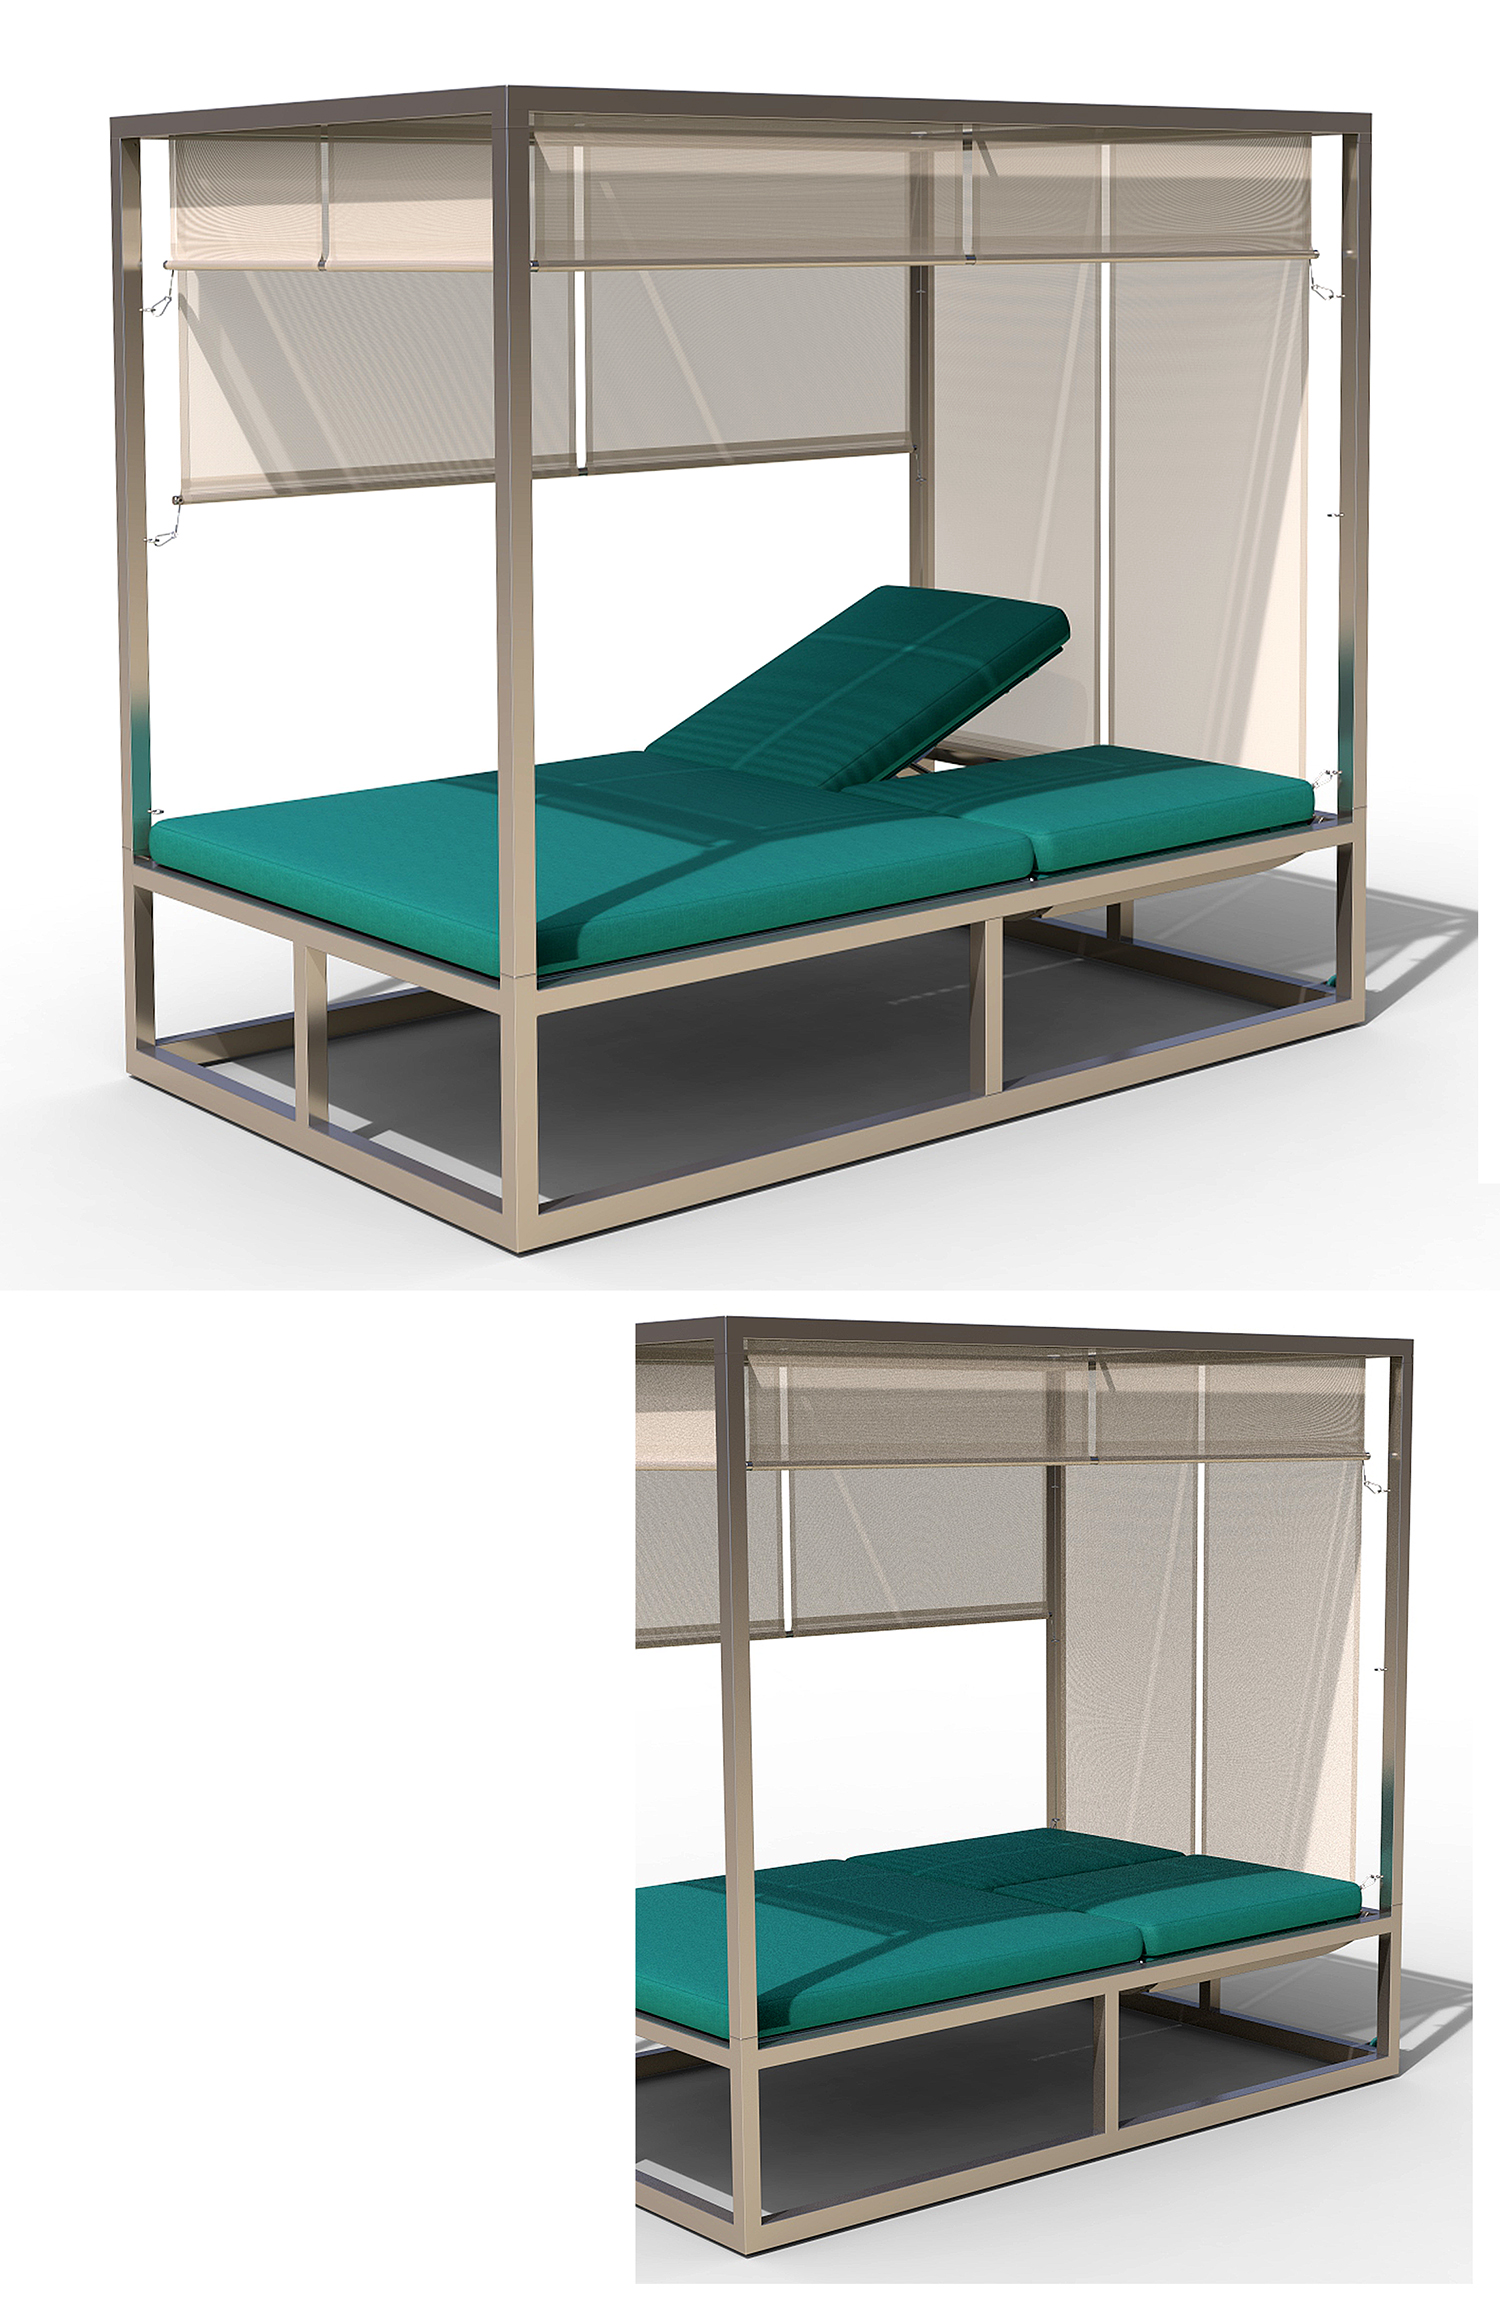 John Caldwell Design Array Daybed